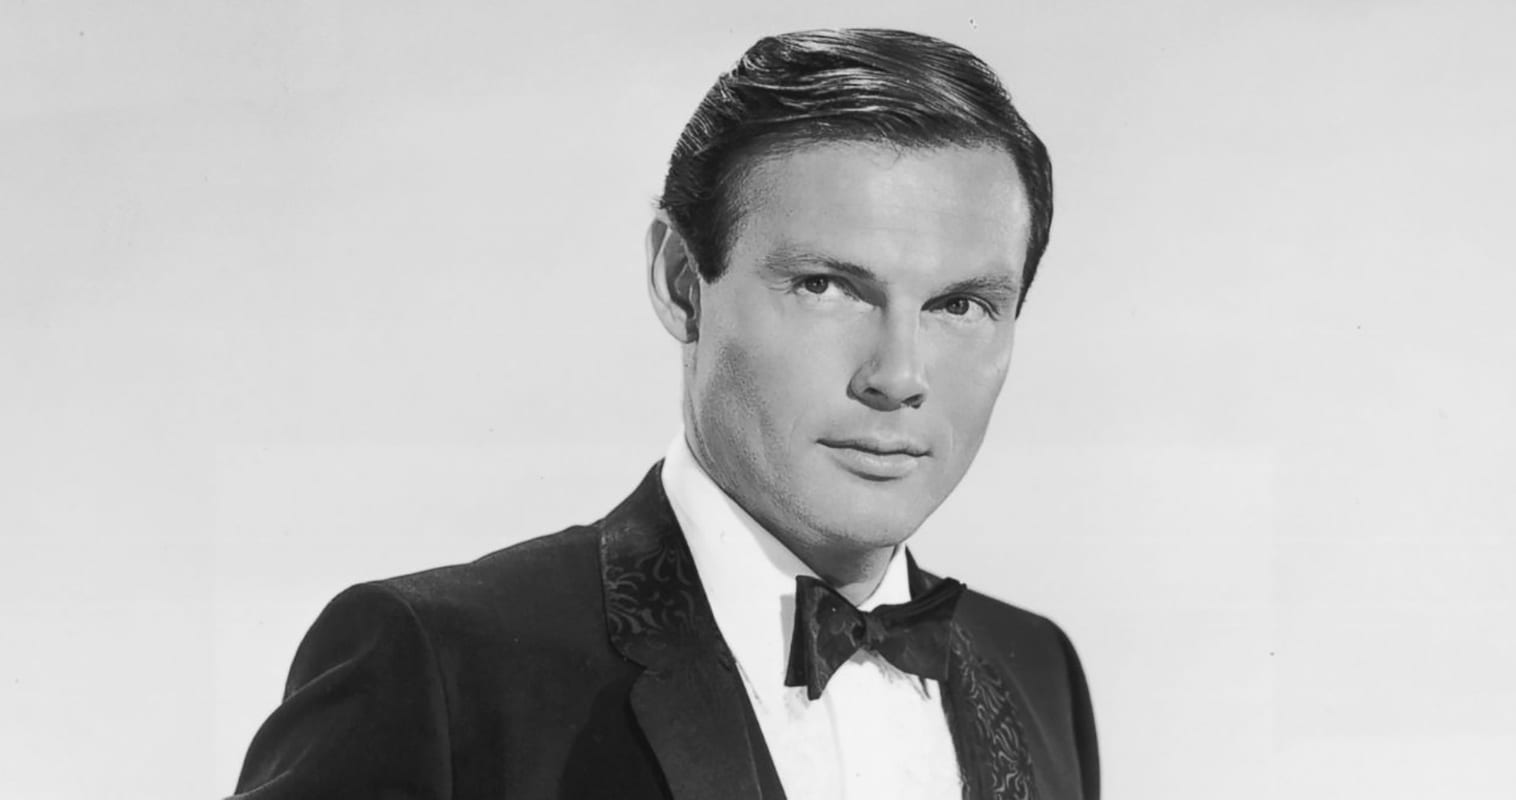 Adam West, TV's first Batman, Dies at 88